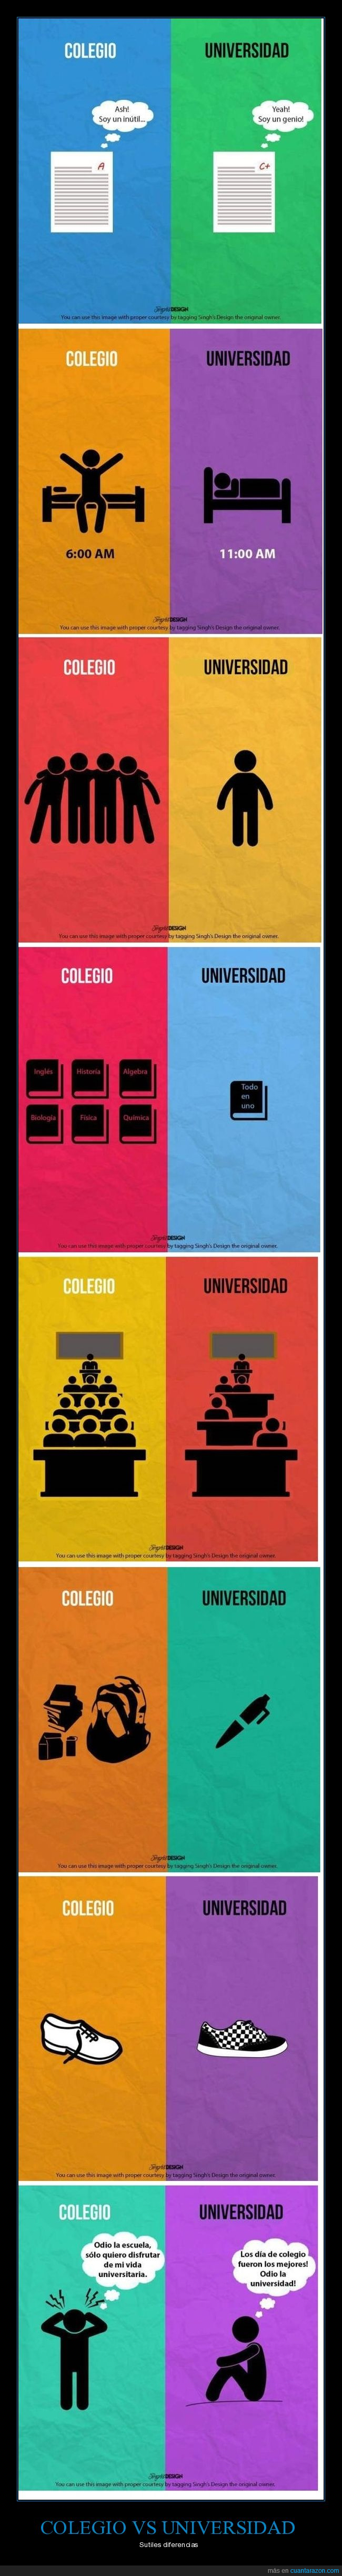 colegio,diferencias,universidad